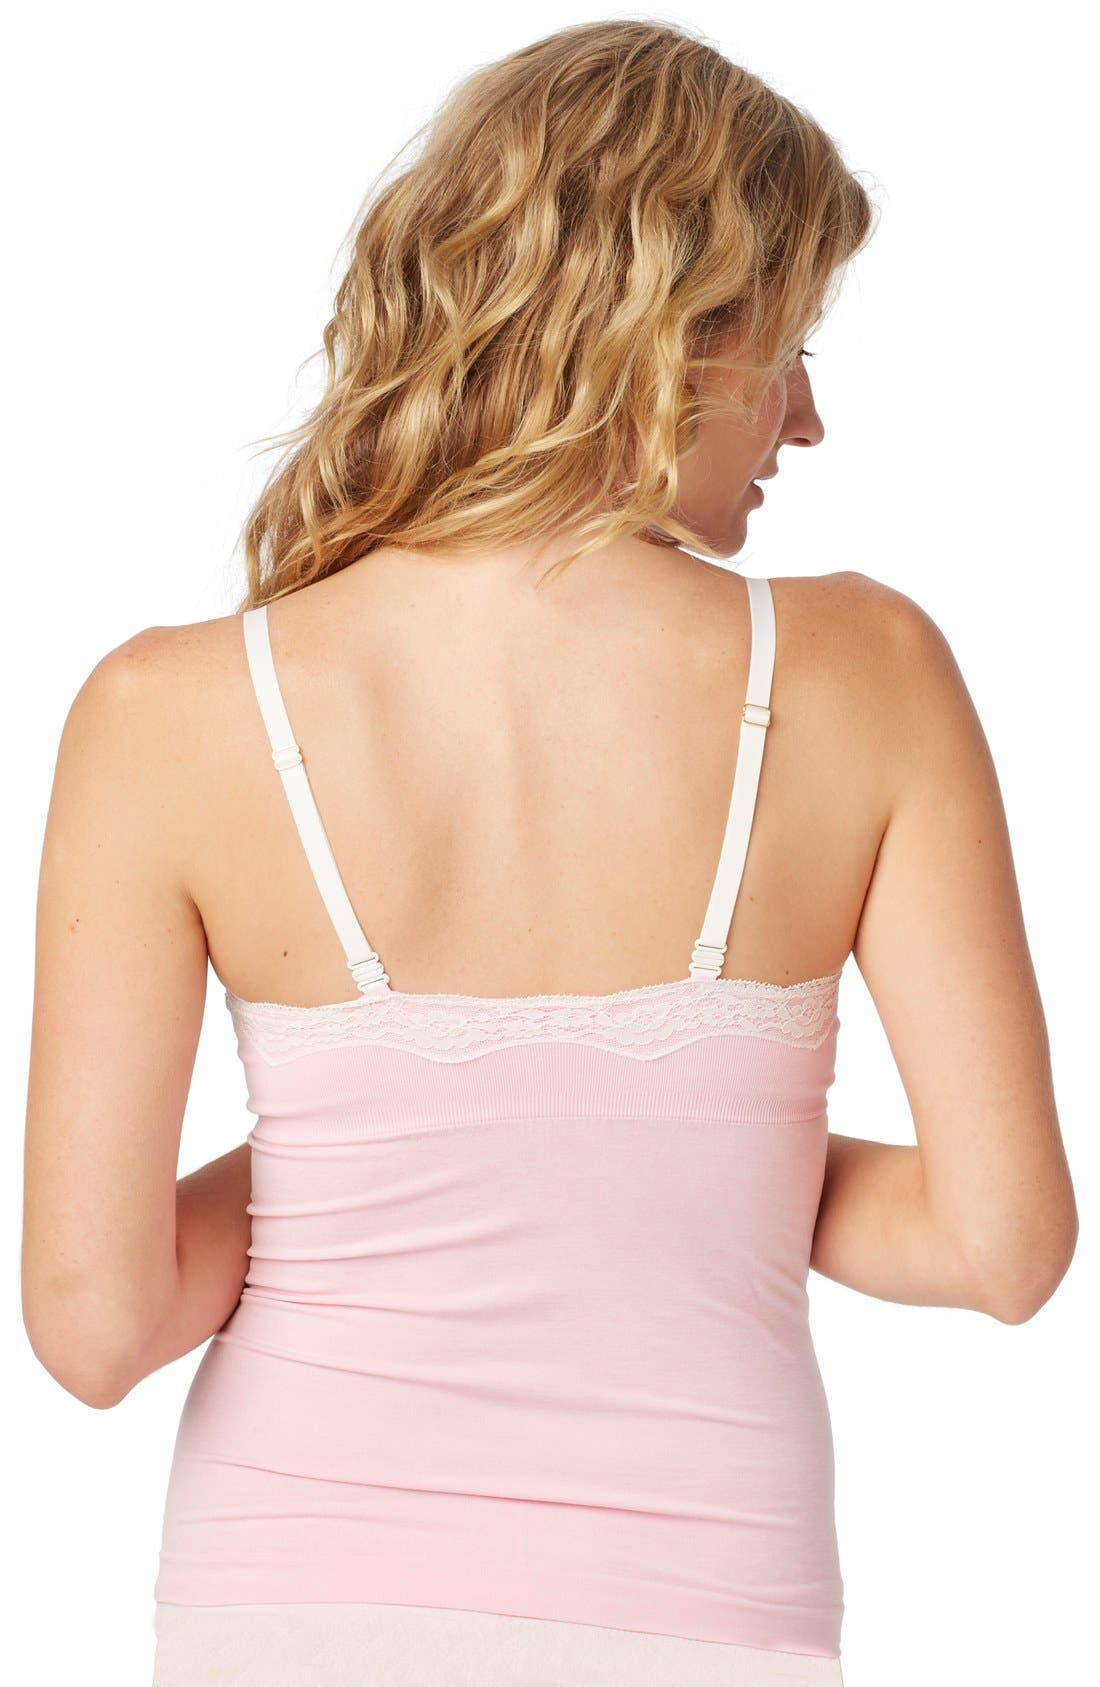 Alternate Image 3  - Rosie Pope Seamless Lace Trim Nursing Maternity Camisole